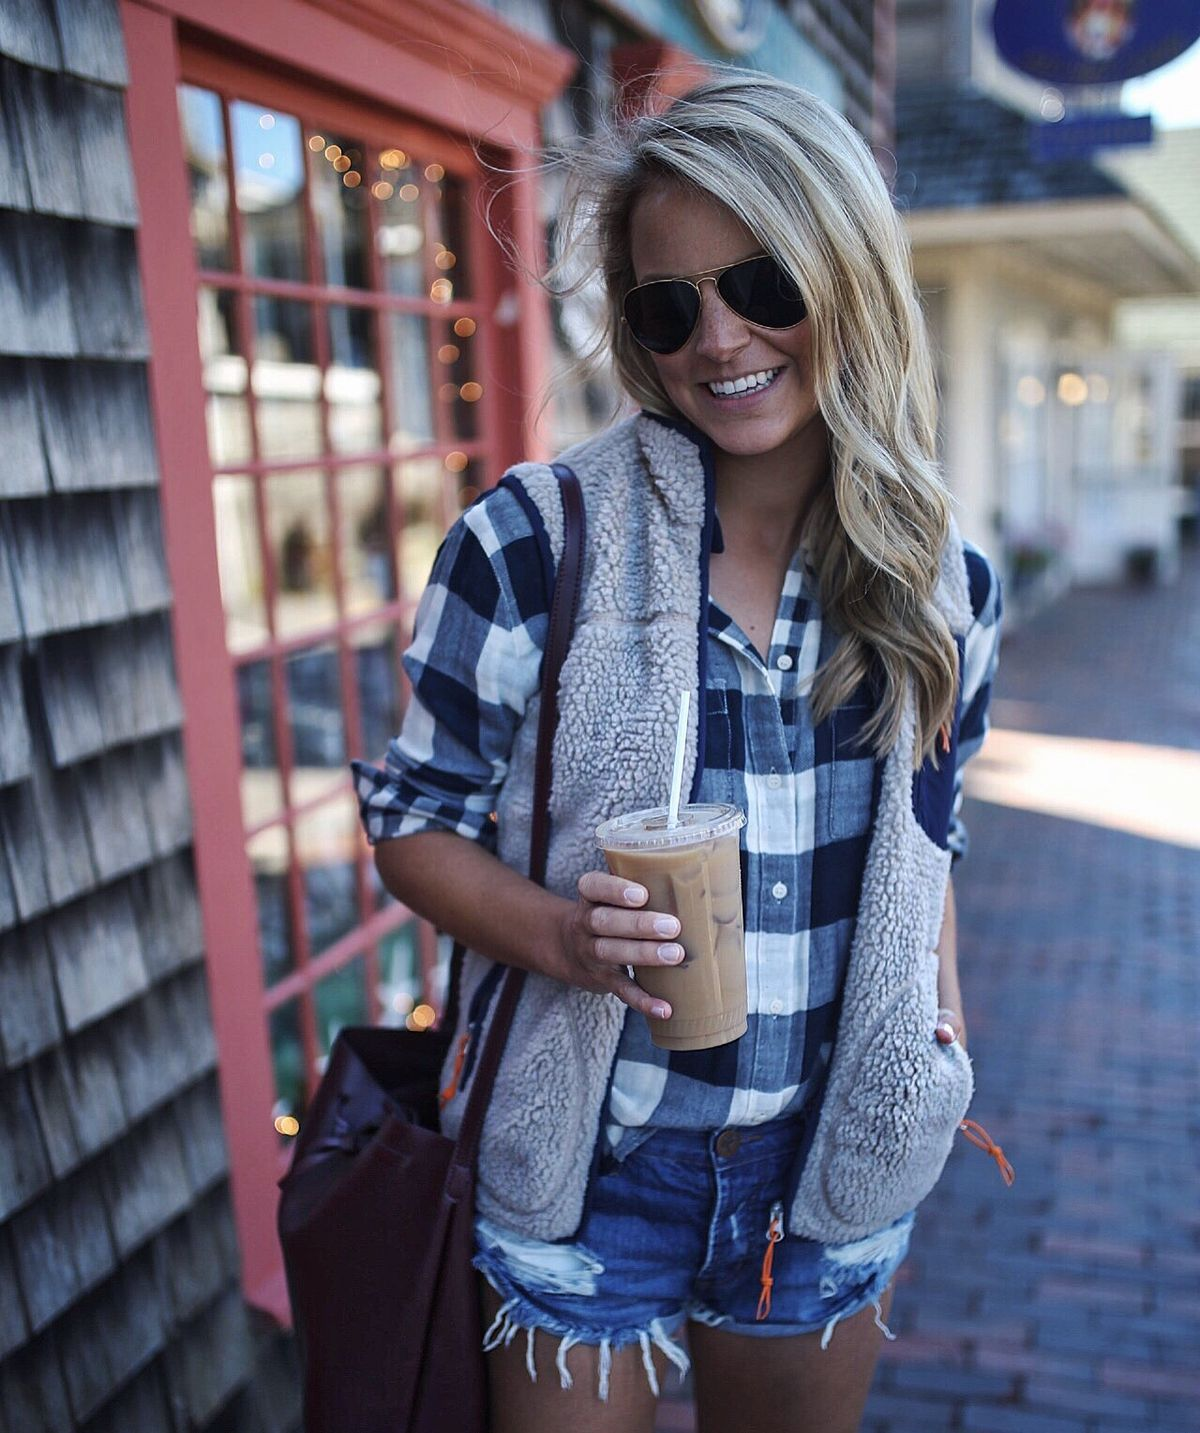 Summer vacations in Maine 14 best outfits to wear #summervacationstyle